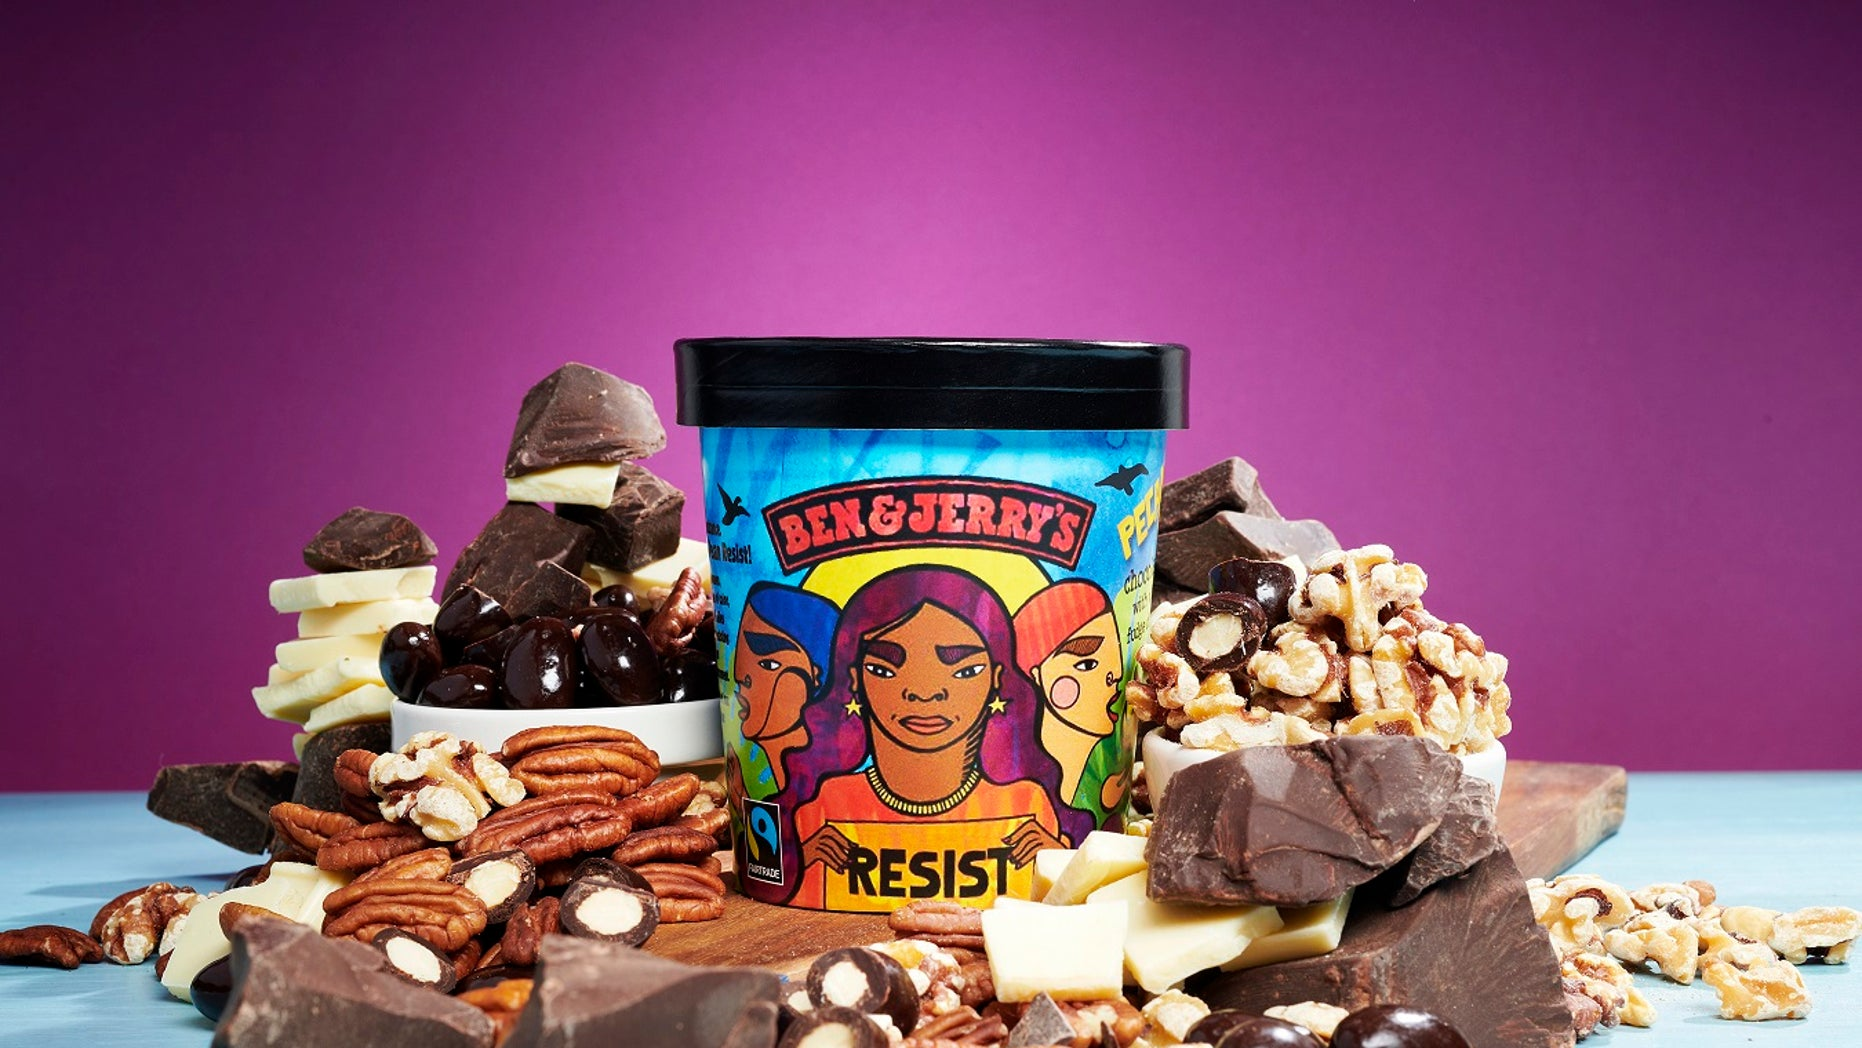 Ben & Jerry's is using the ice cream to take a stance against the Trump administration.